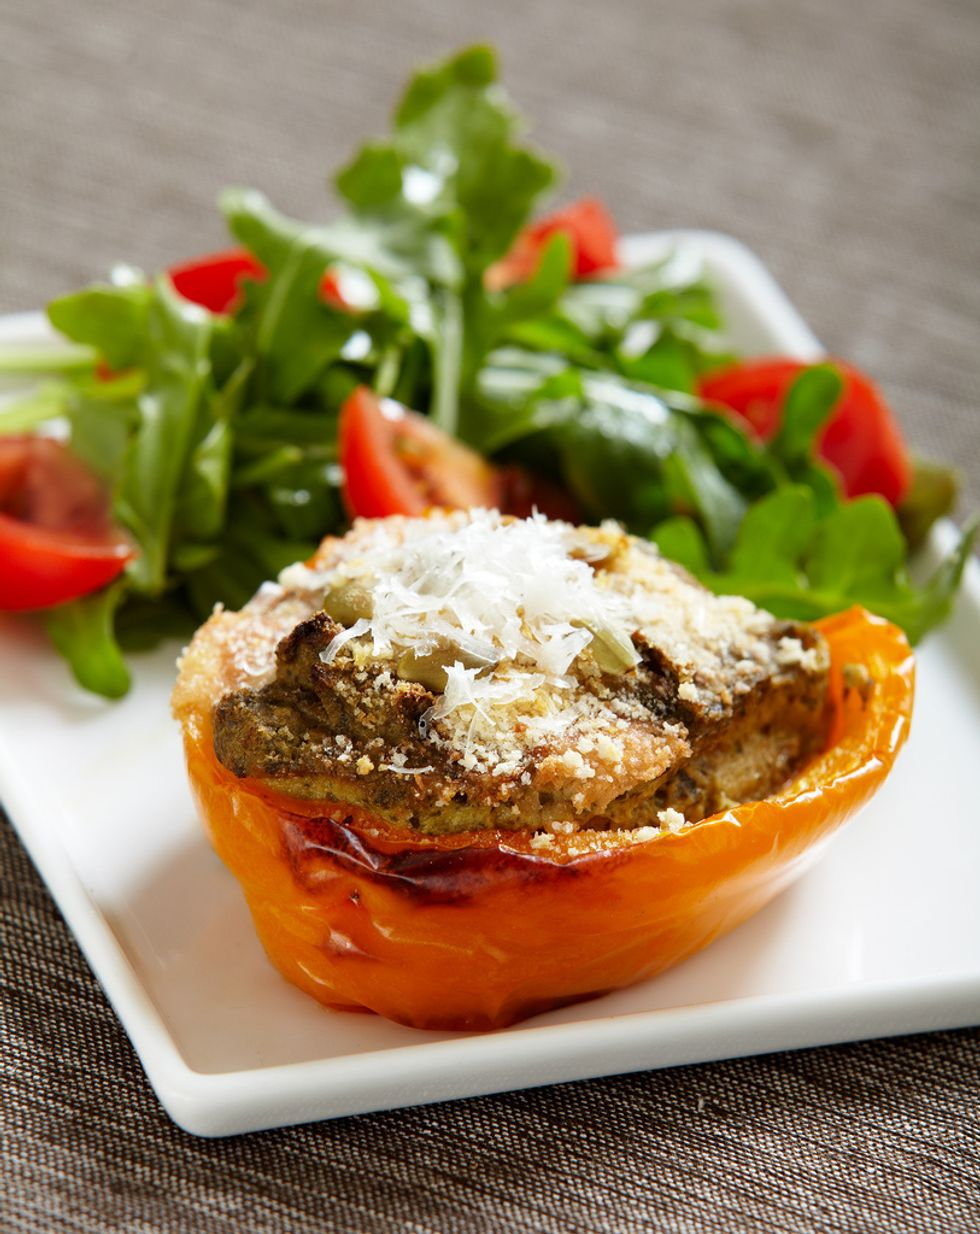 Meal Prep Your Heart Out With These 10 Yummy Meals